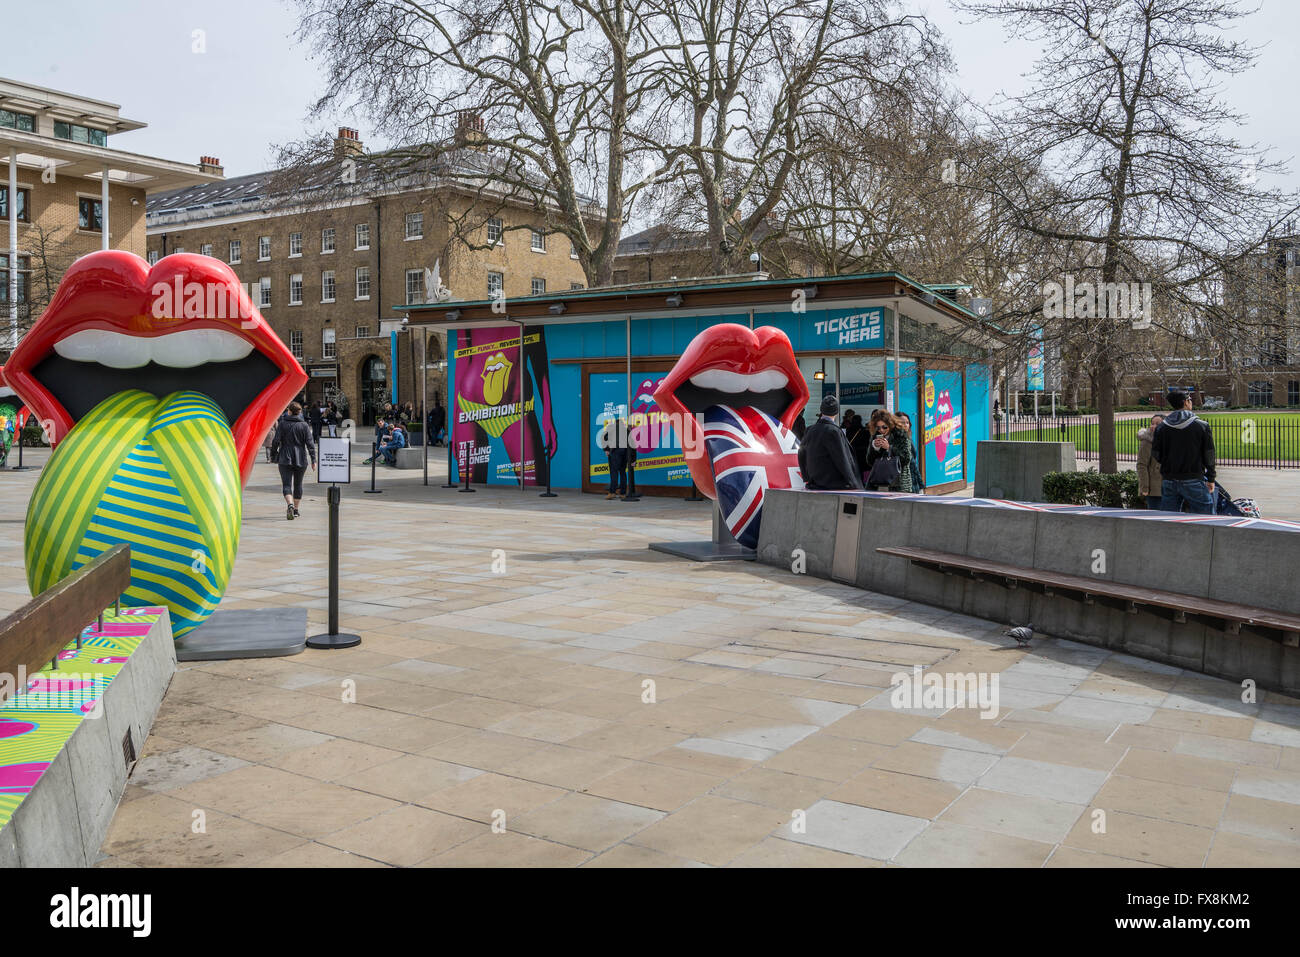 Ticket office and street sculpture for the Rolling Stones exhibition at the Saatchi Gallery in Chelsea, London. - Stock Image